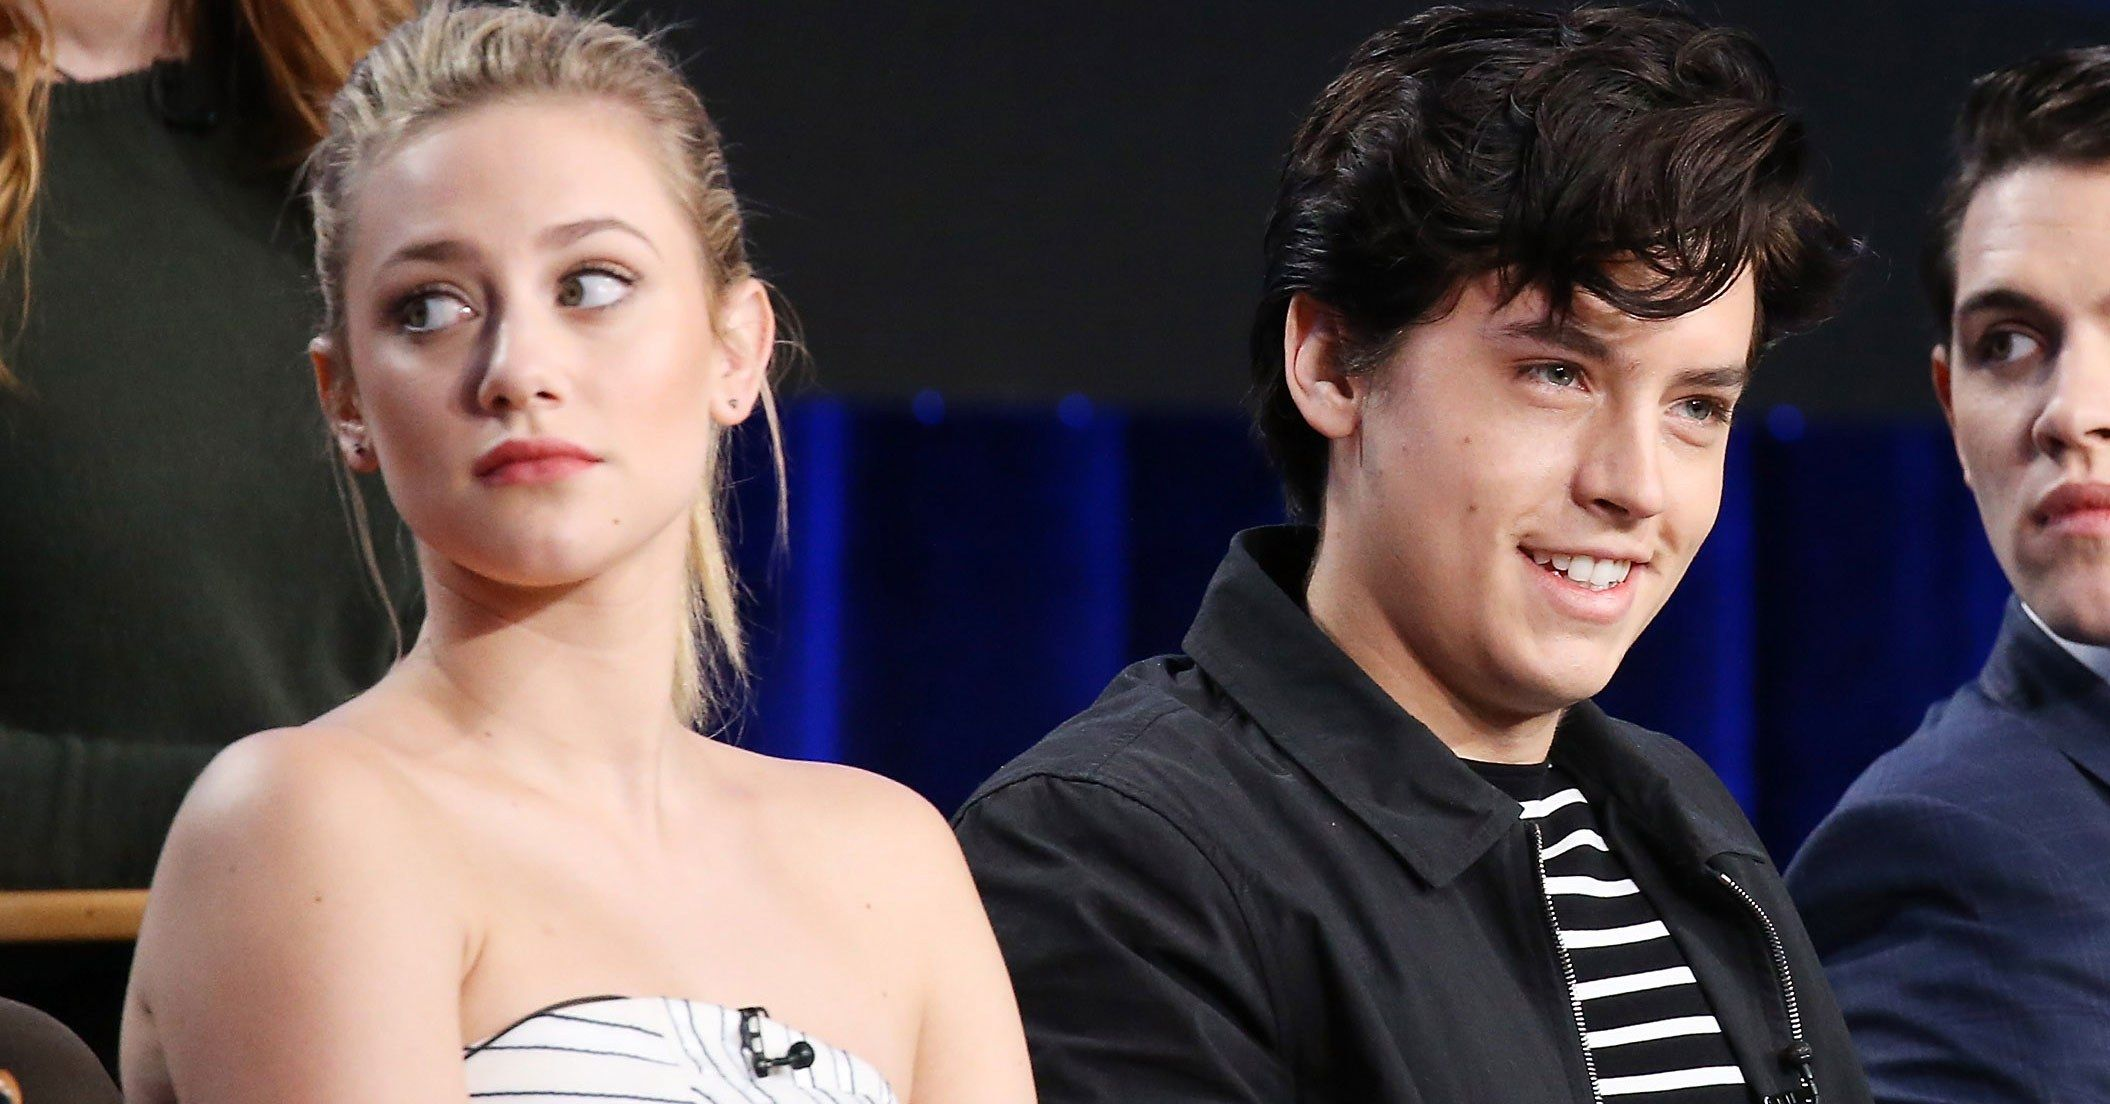 riverdale cast actually dating